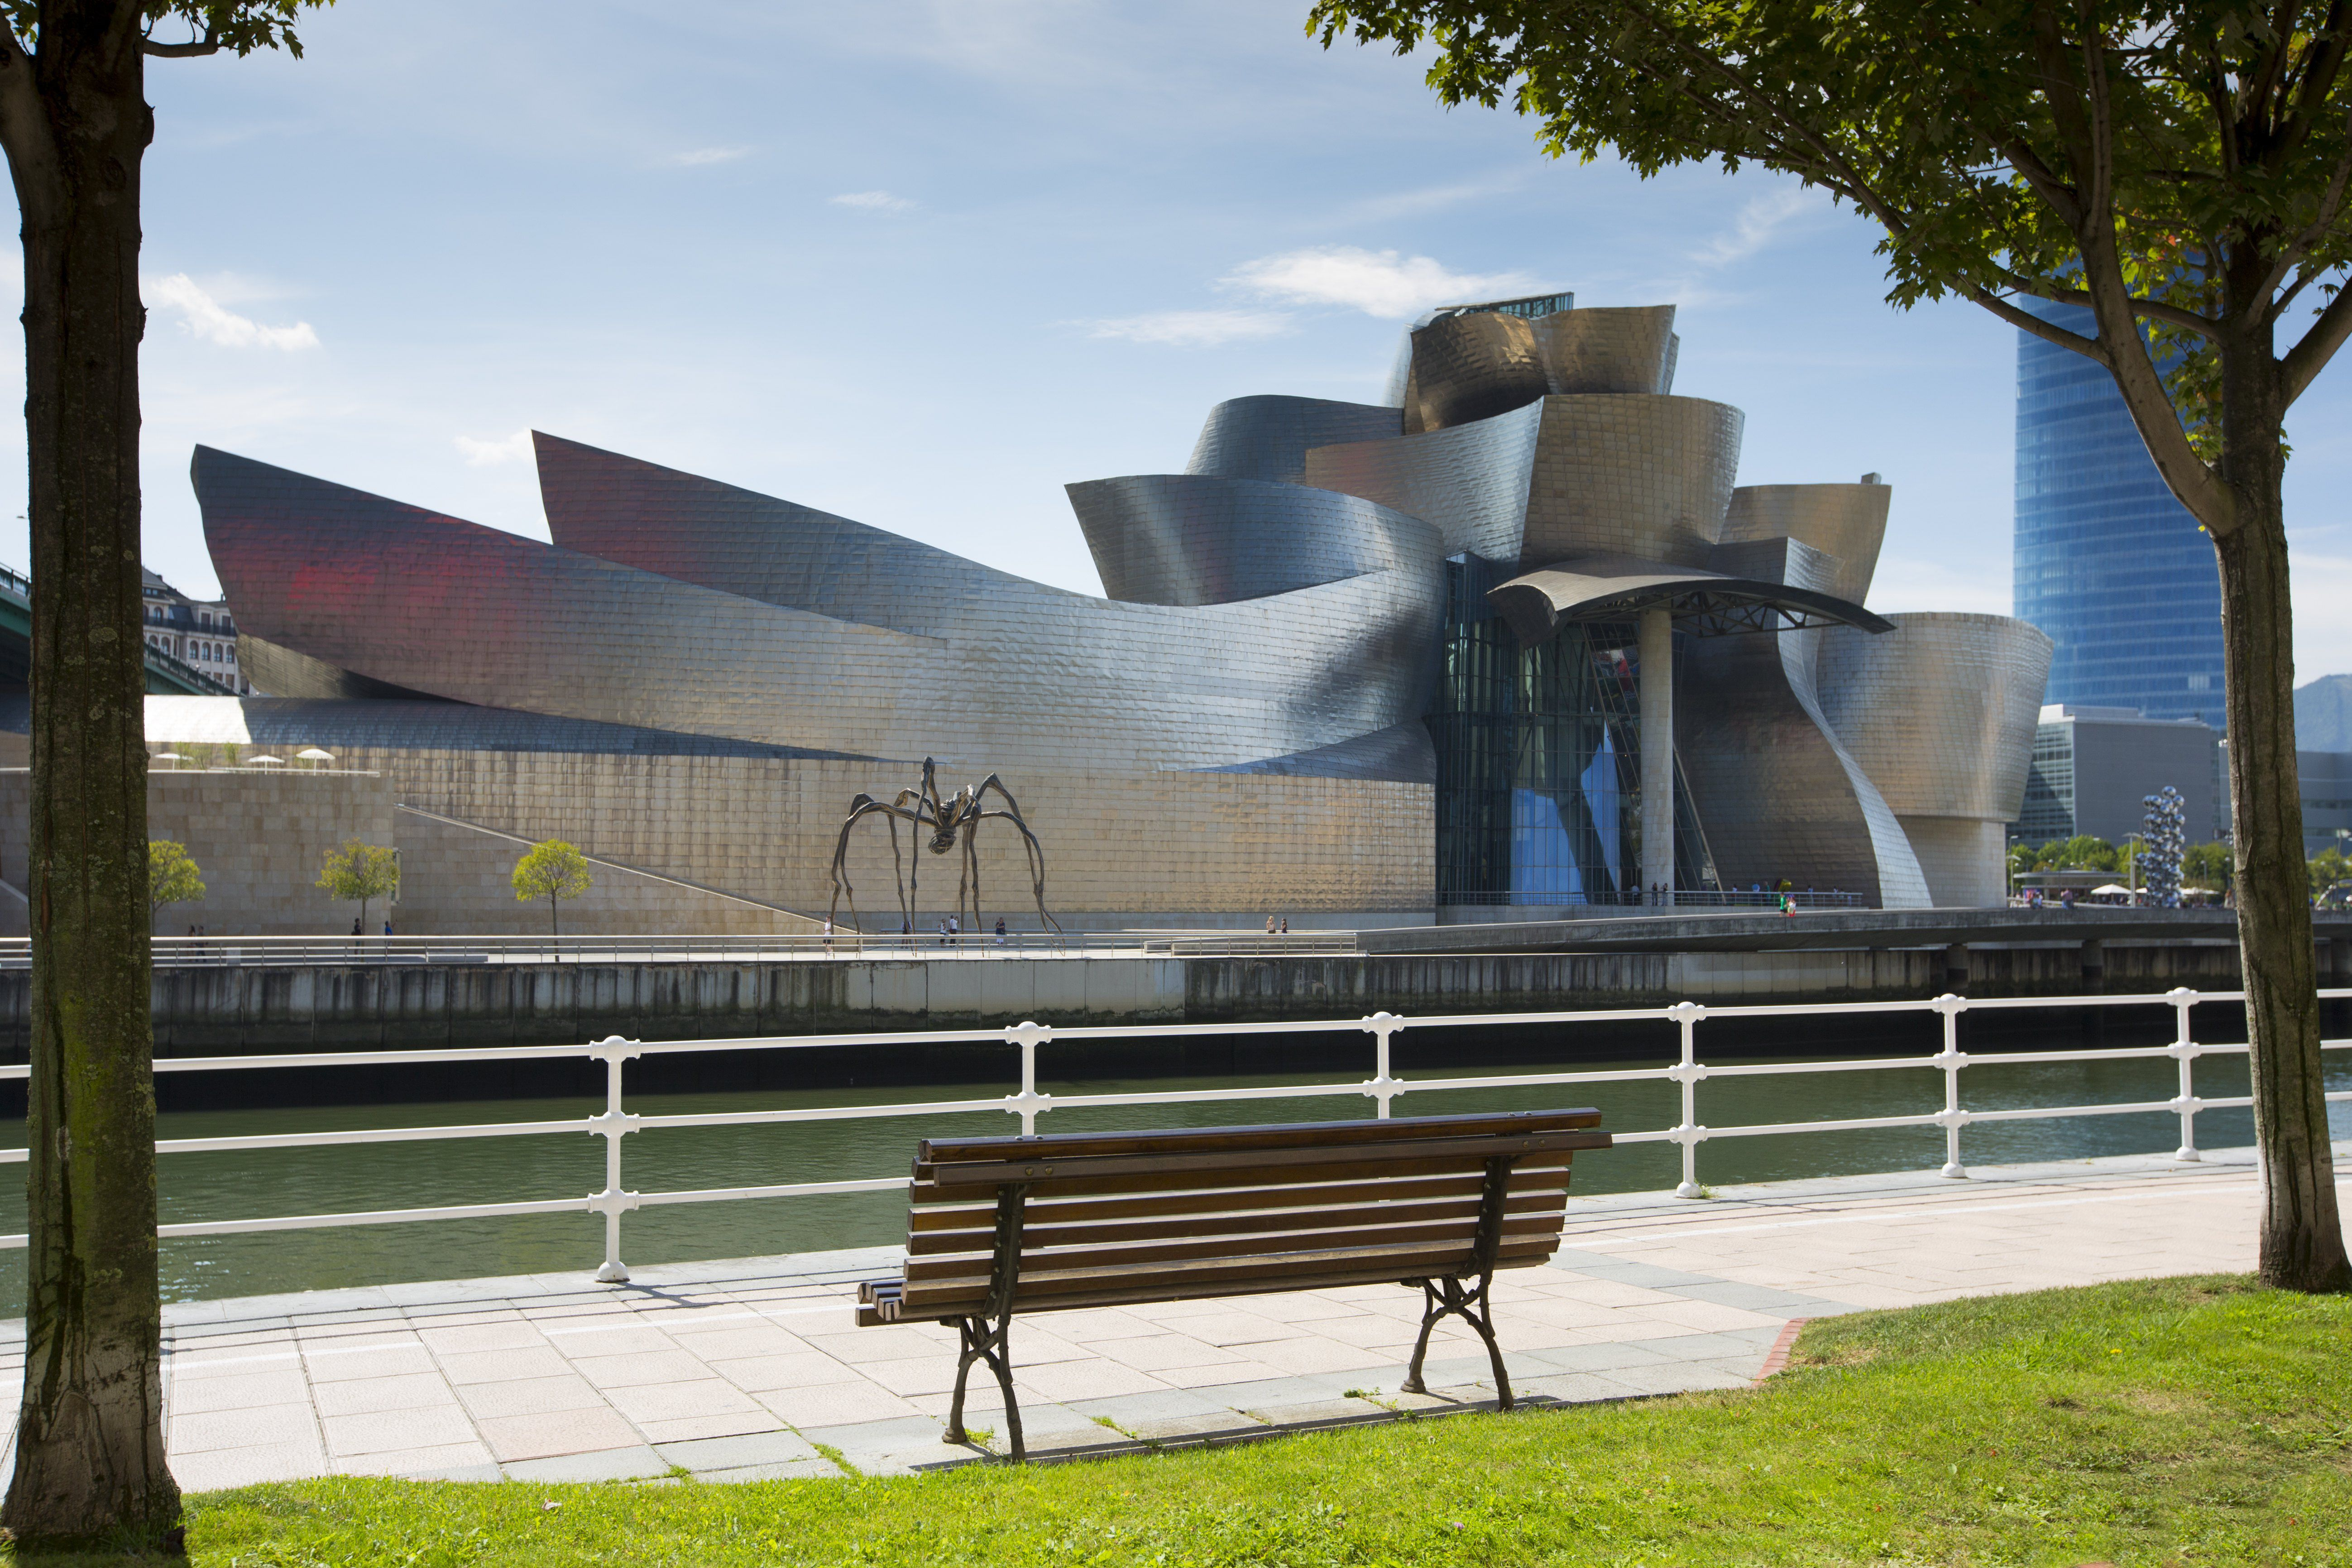 shiny, curvy modern metal building as seen from a park bench across a body of water